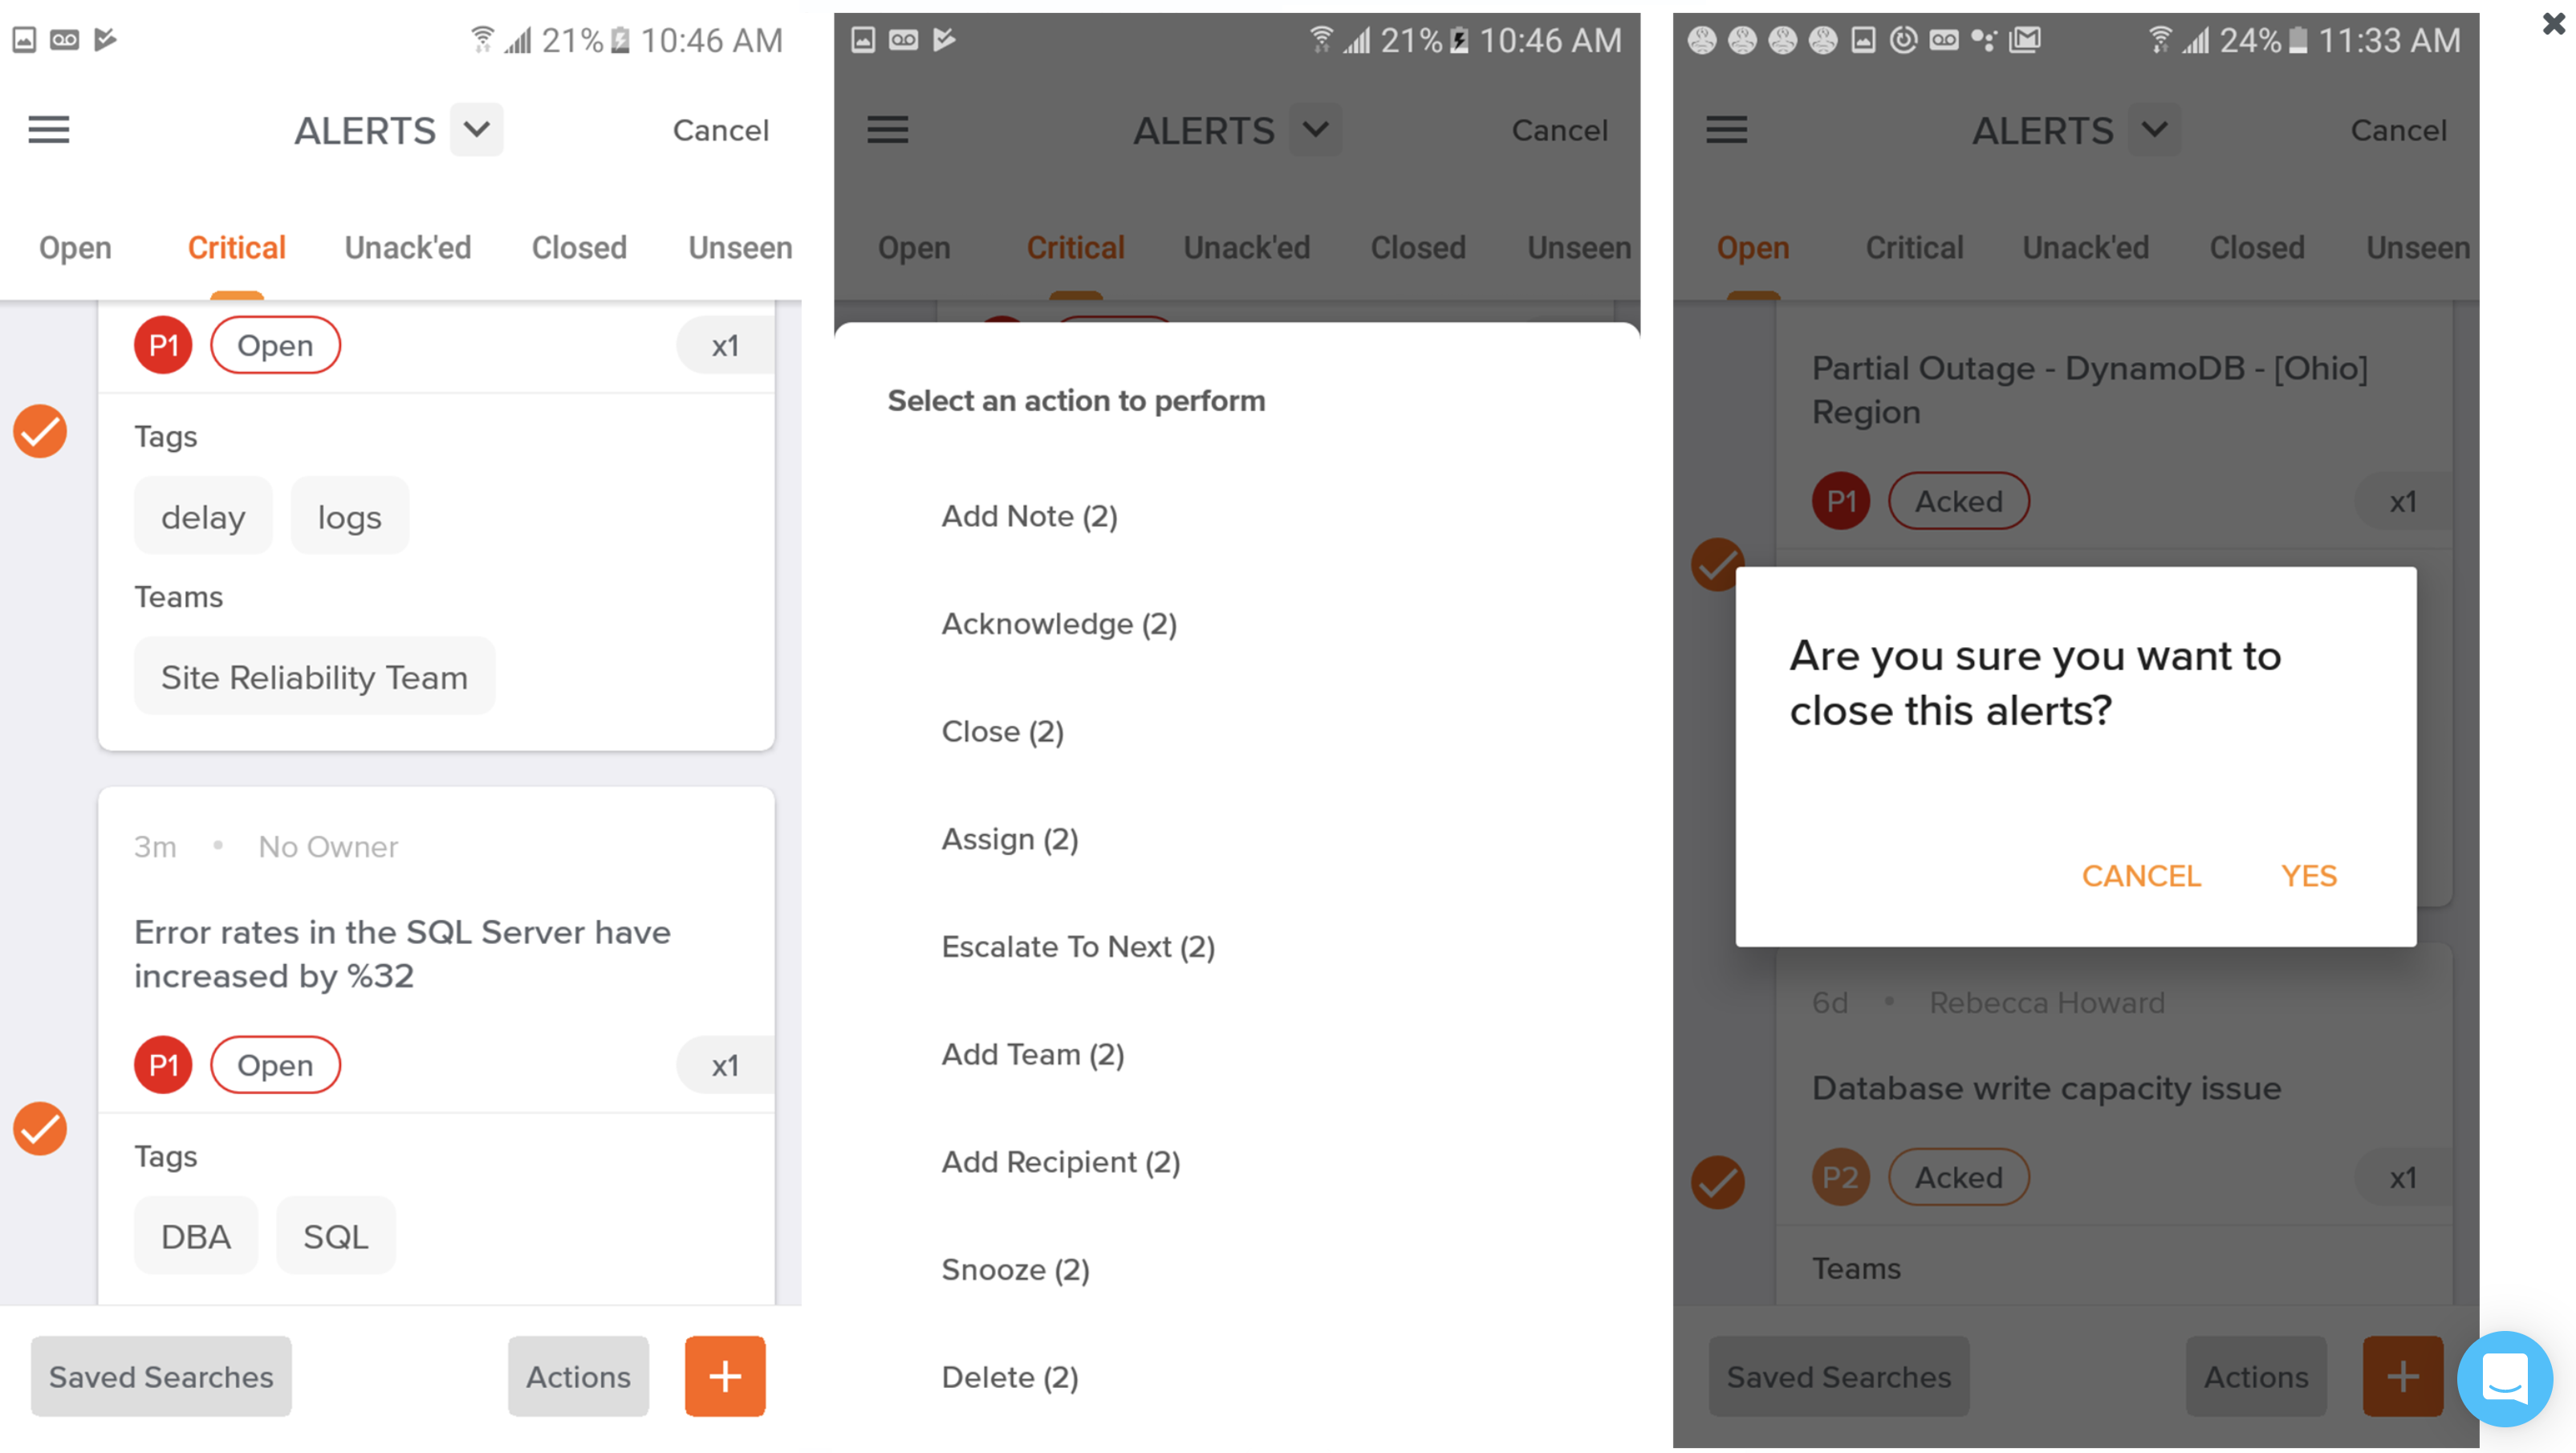 A screenshot showing how to take actions on multiple alerts in Opsgenie's Android app.